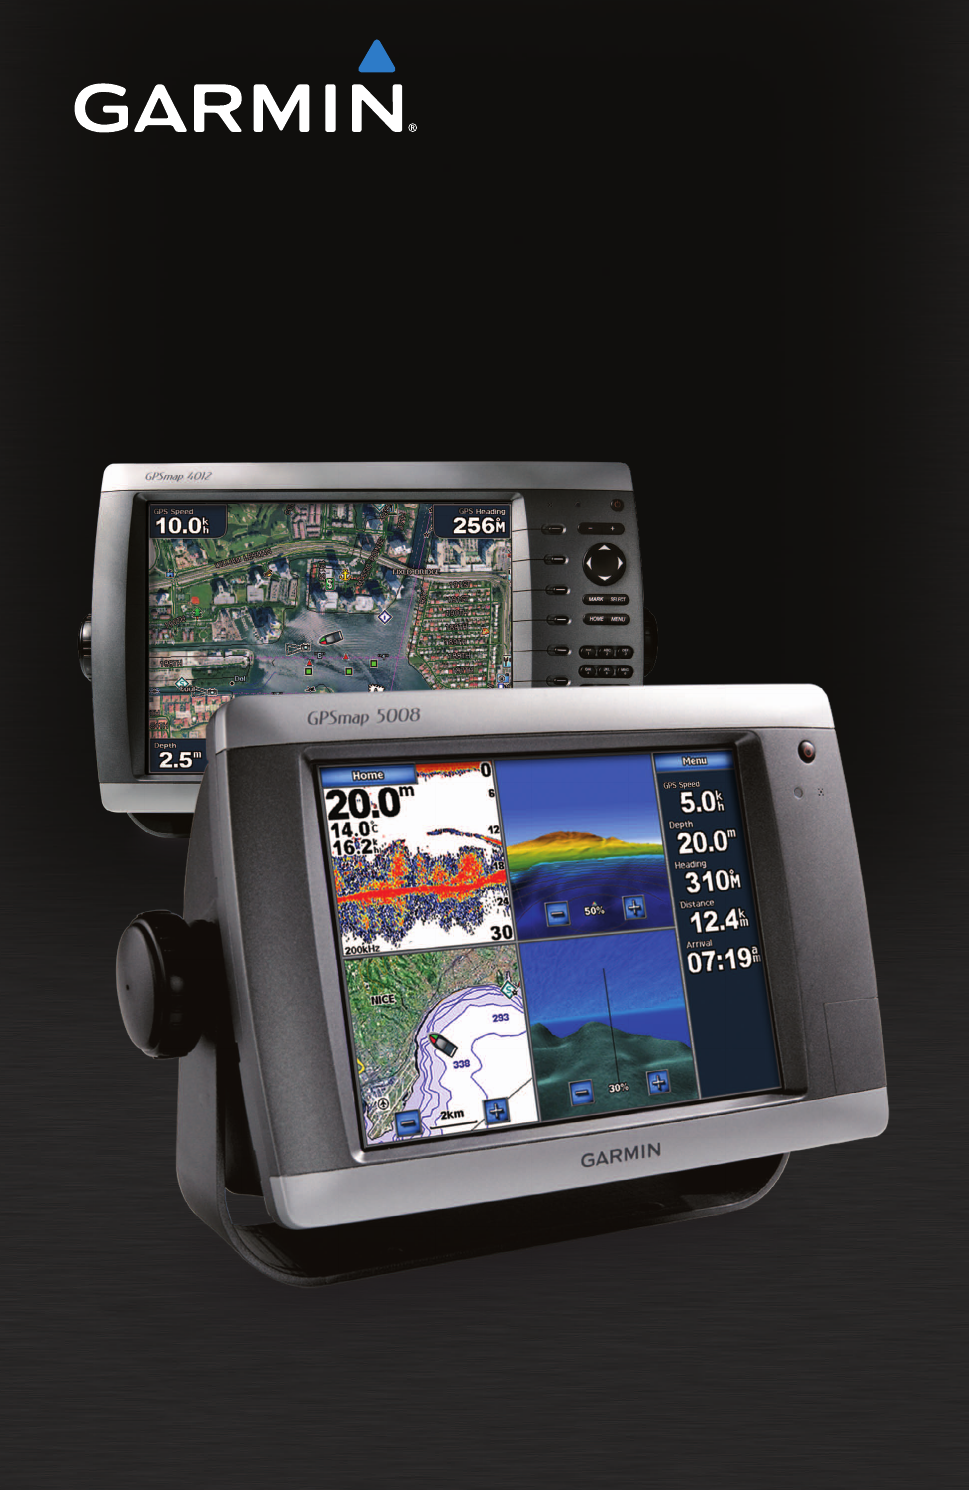 garmin gpsmap 5012 owner s manual free pdf download 116 pages rh manualagent com Garmin GPS 12 Manual Garmin Manuals Nuvi 275